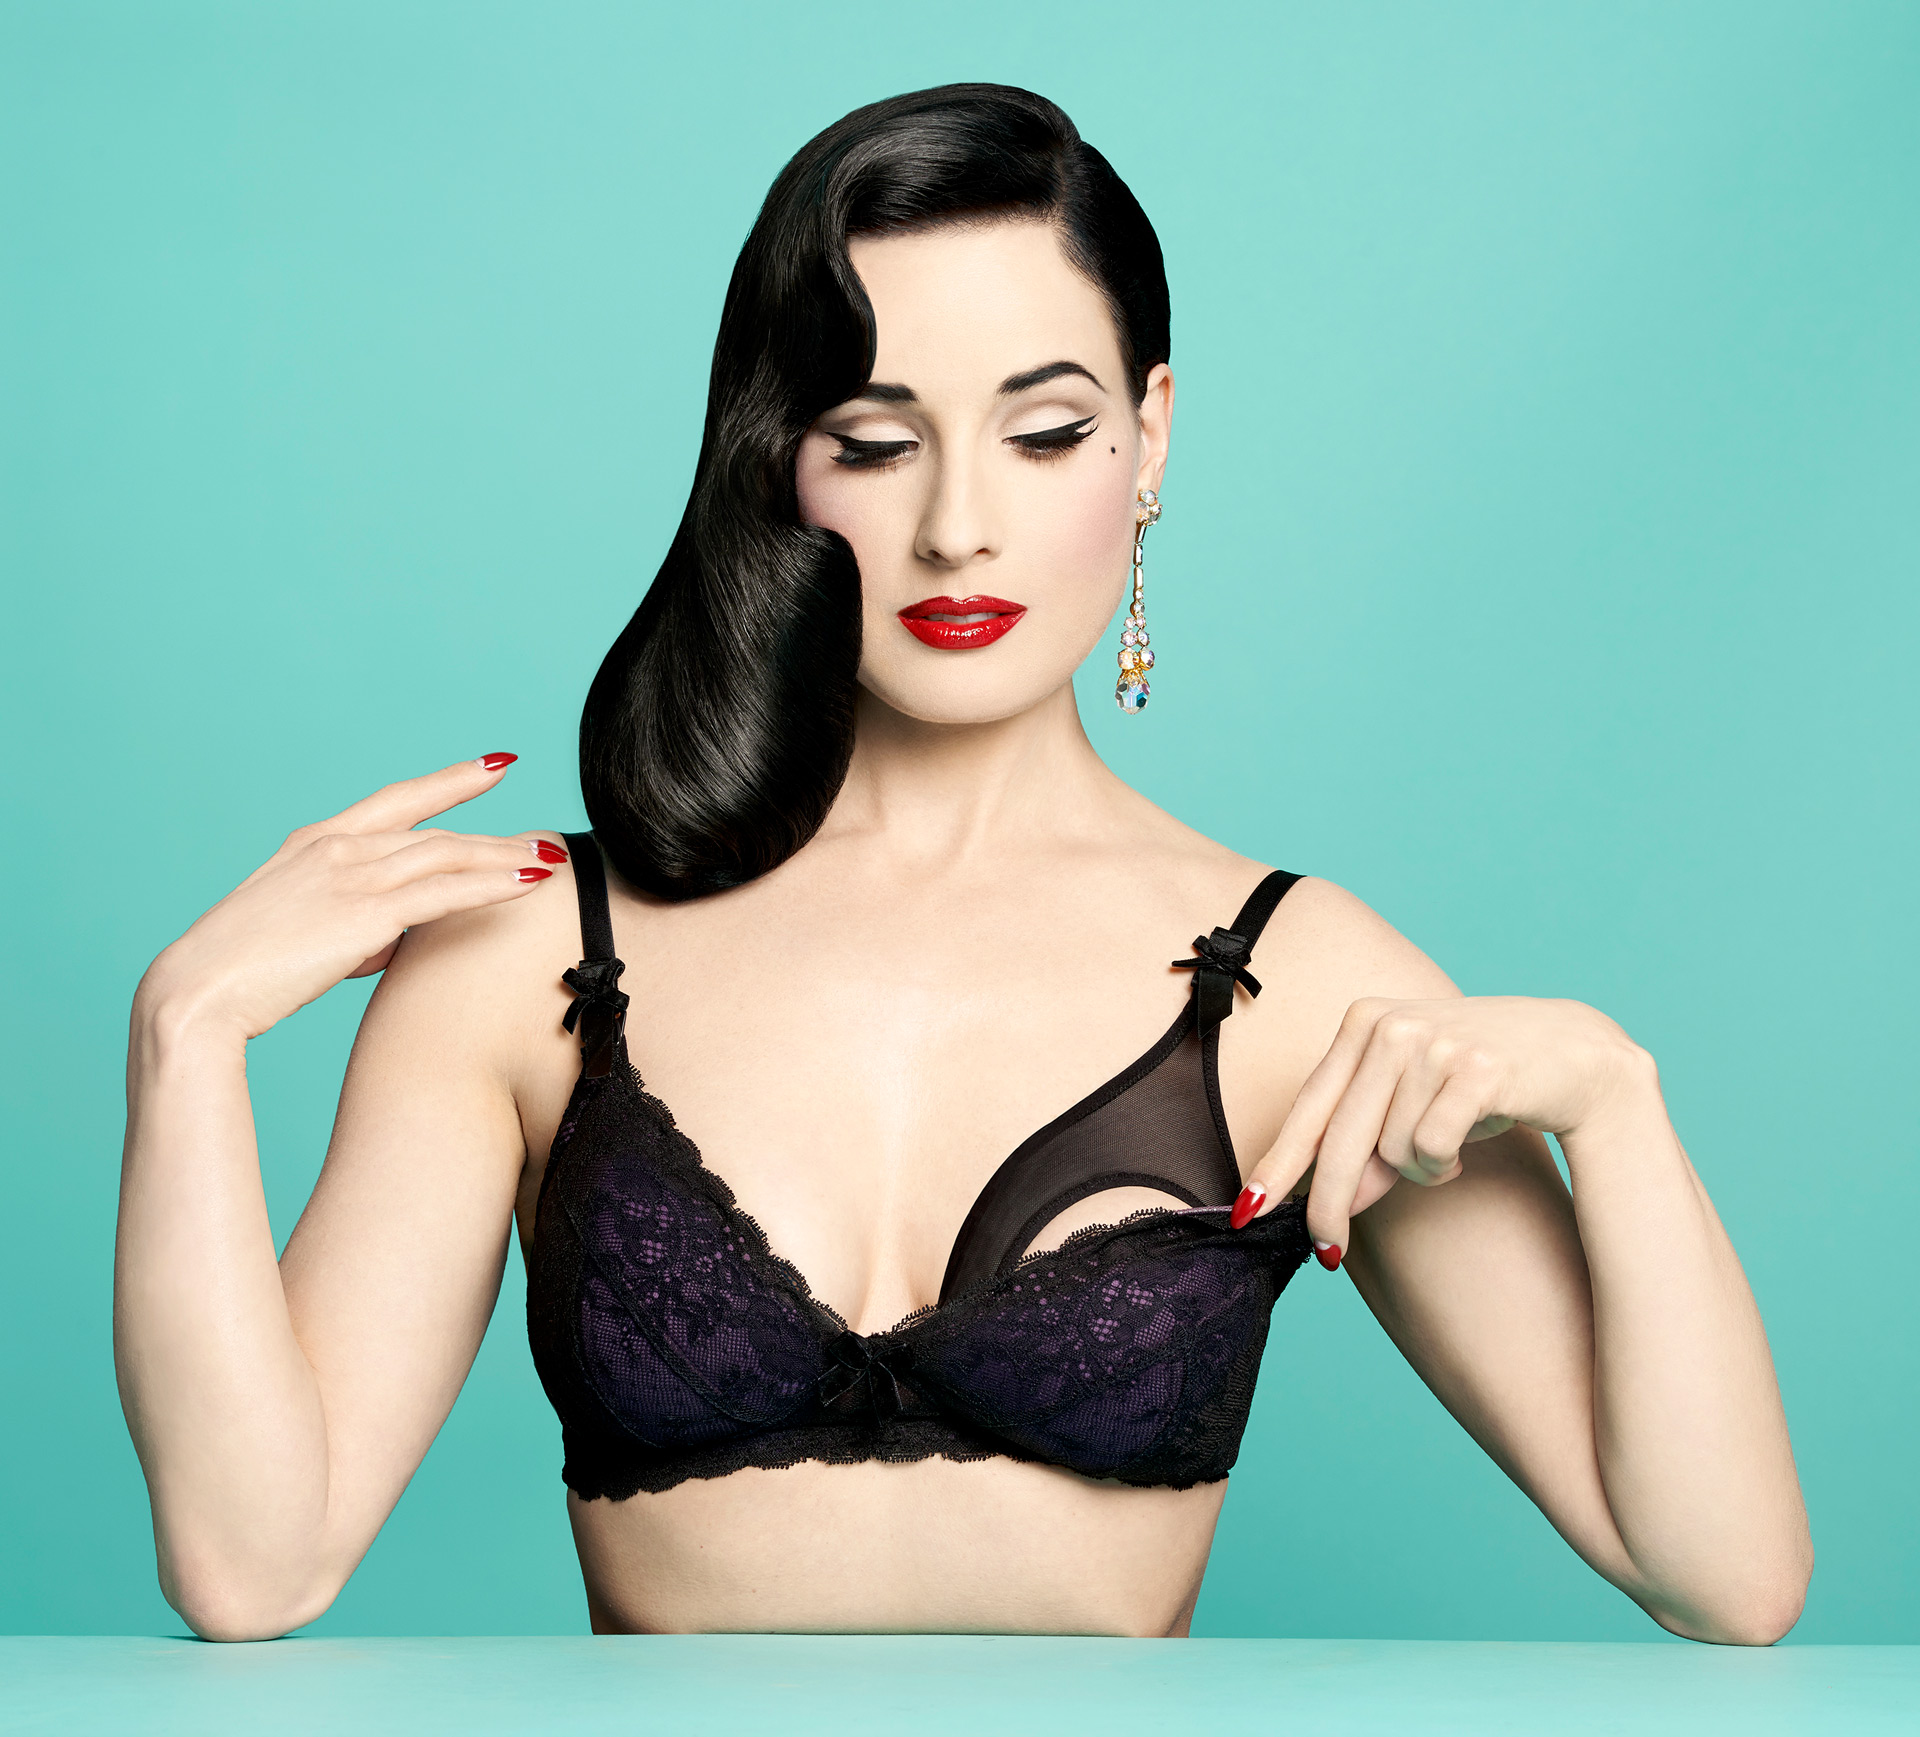 These Dita Von Teese nursing bras will make you want to breastfeed in public